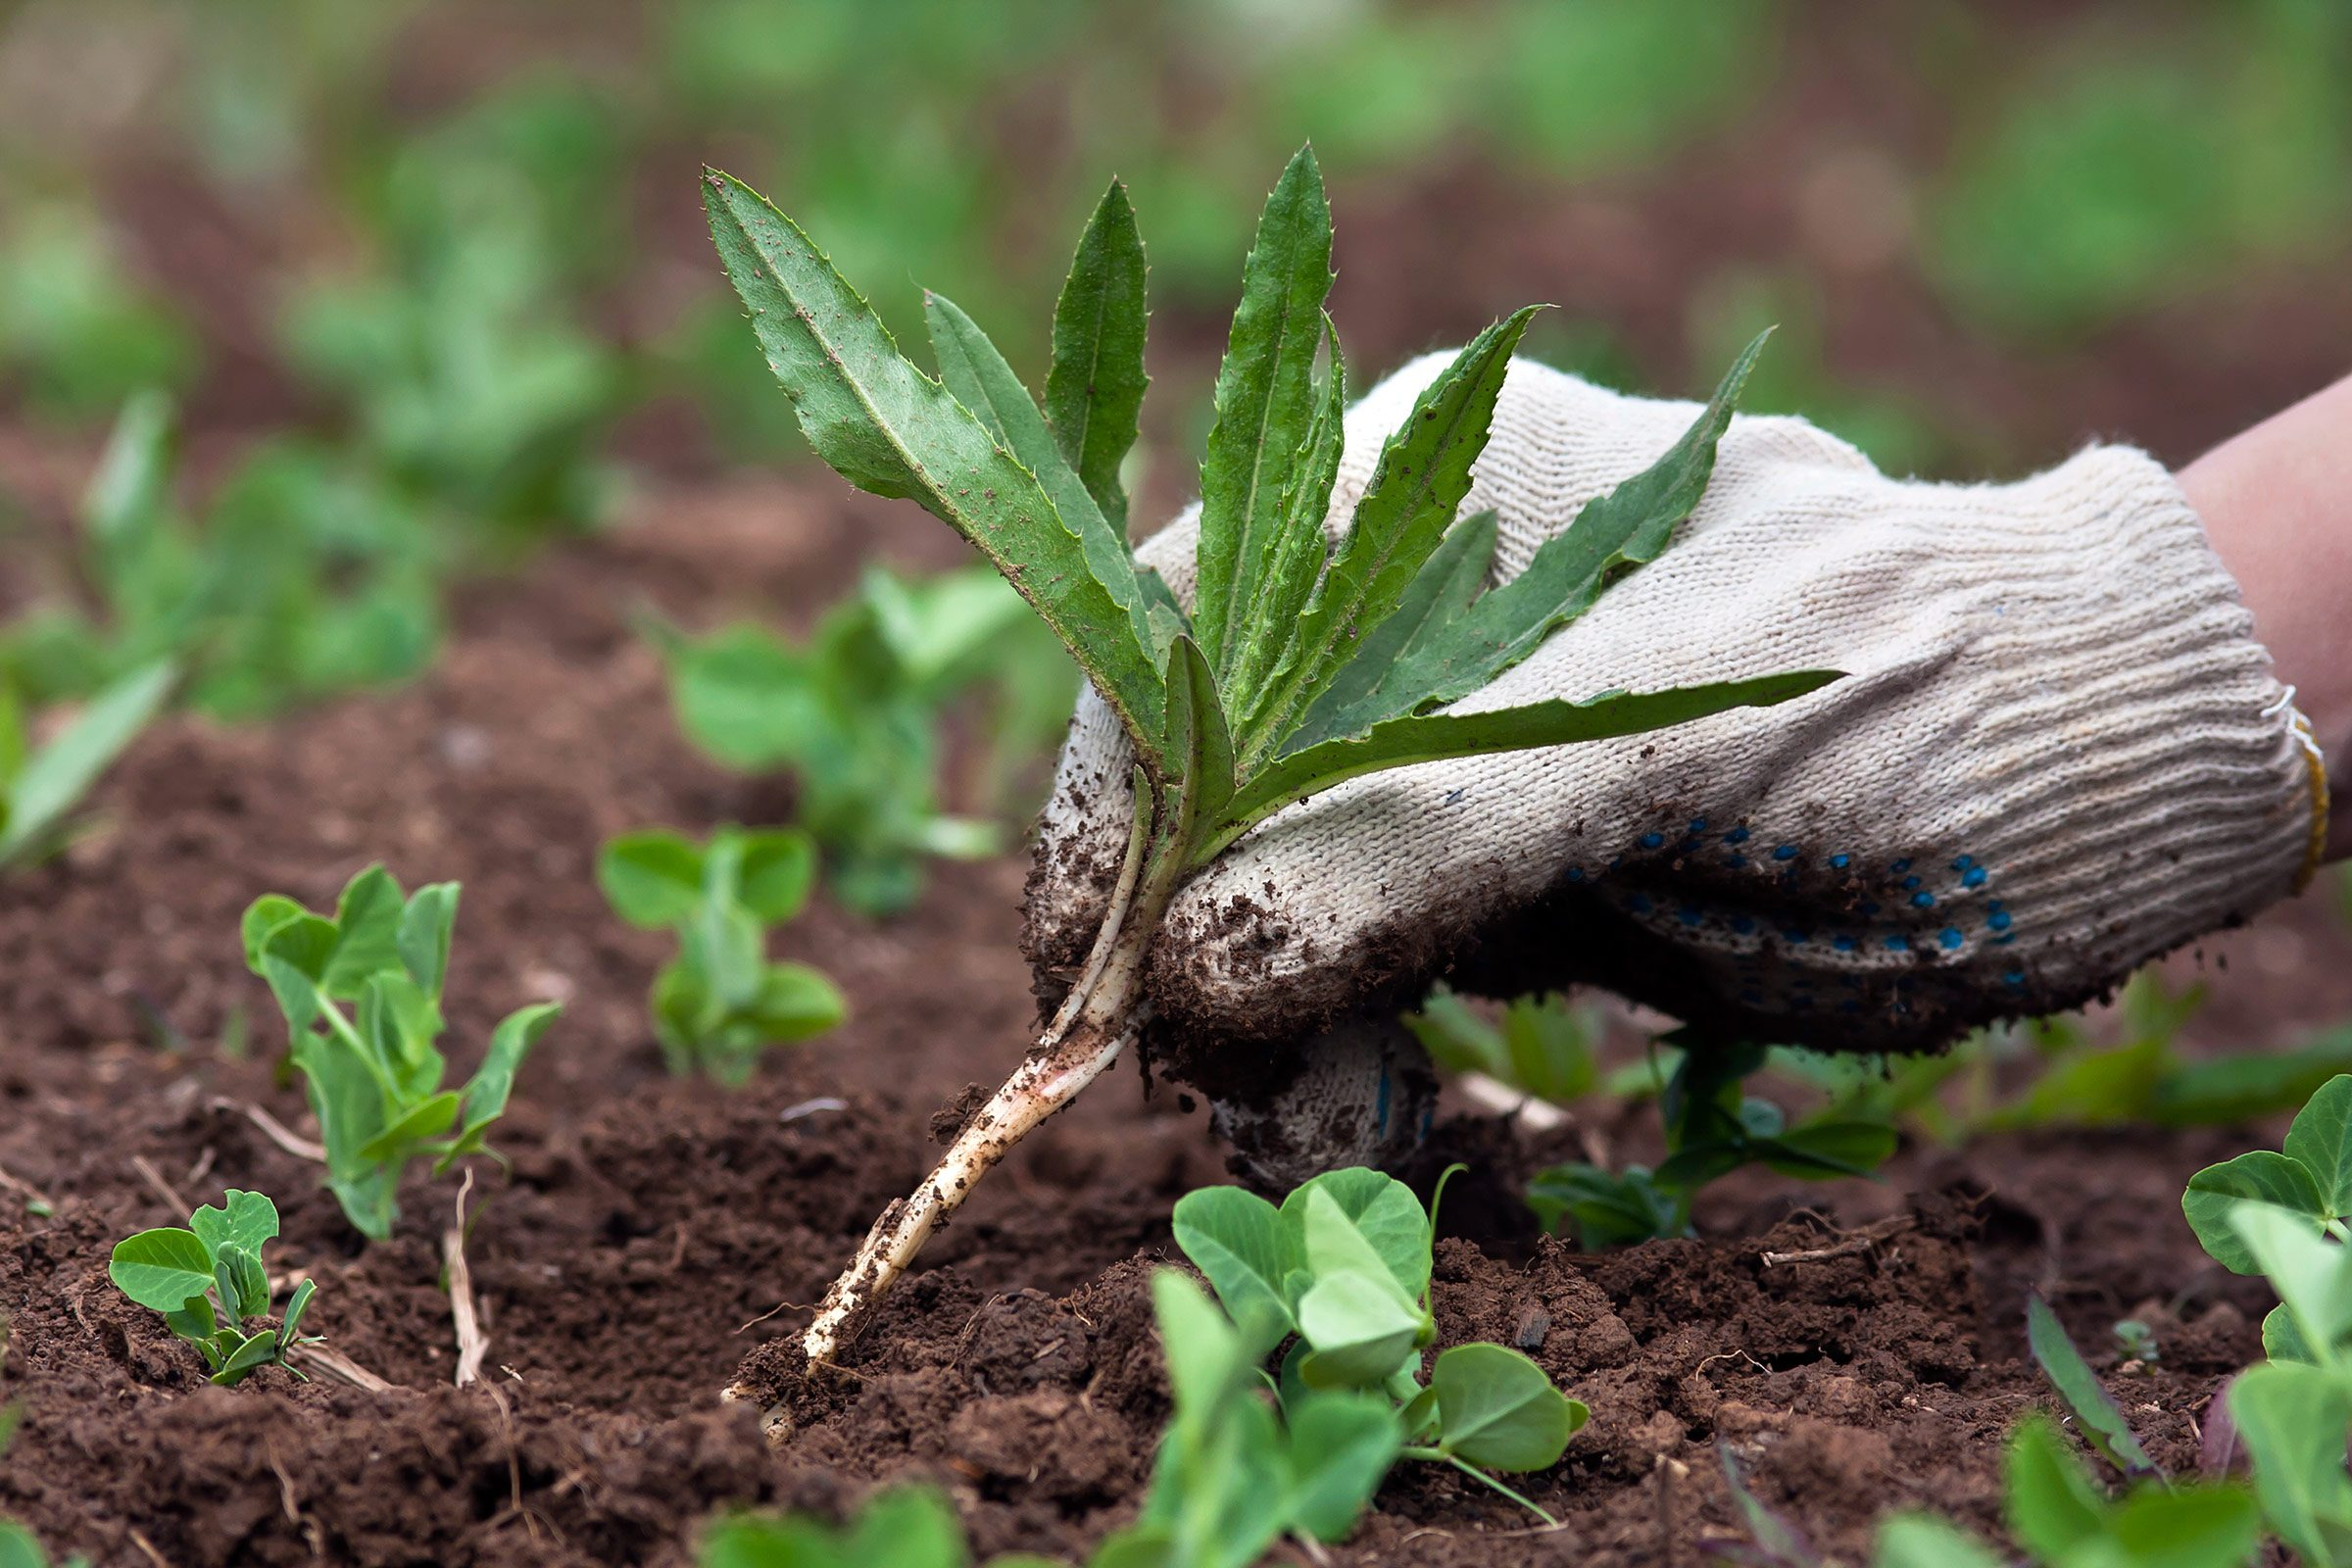 Weeds in flower beds organic killer - Take It All